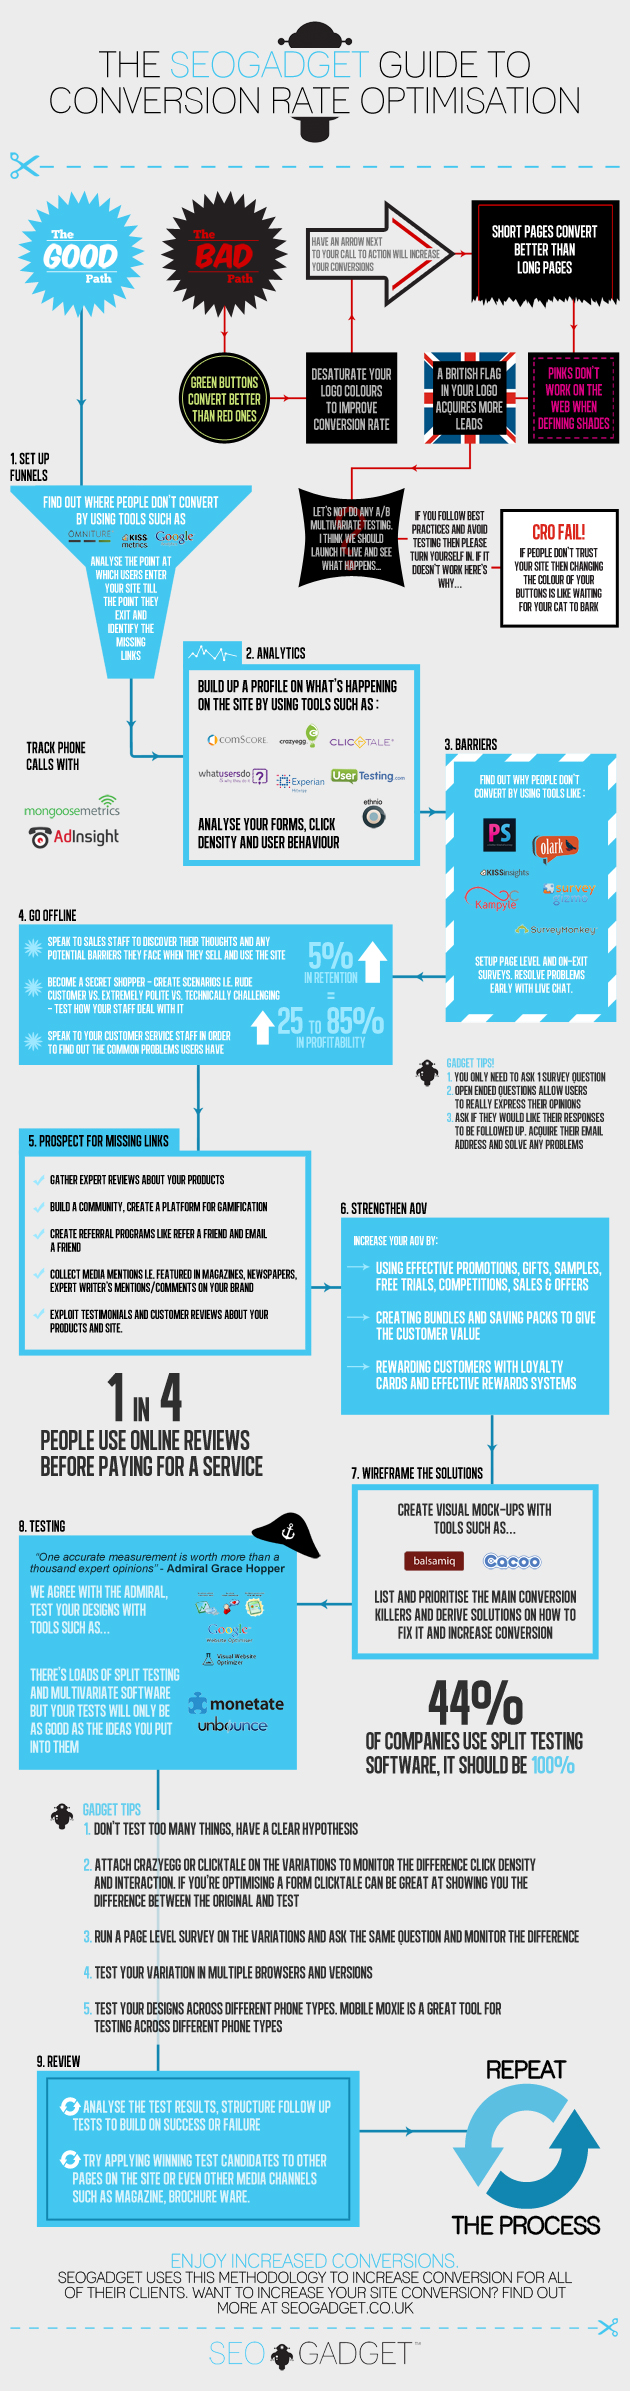 Conversion Rate Optimisation Guide-infographic